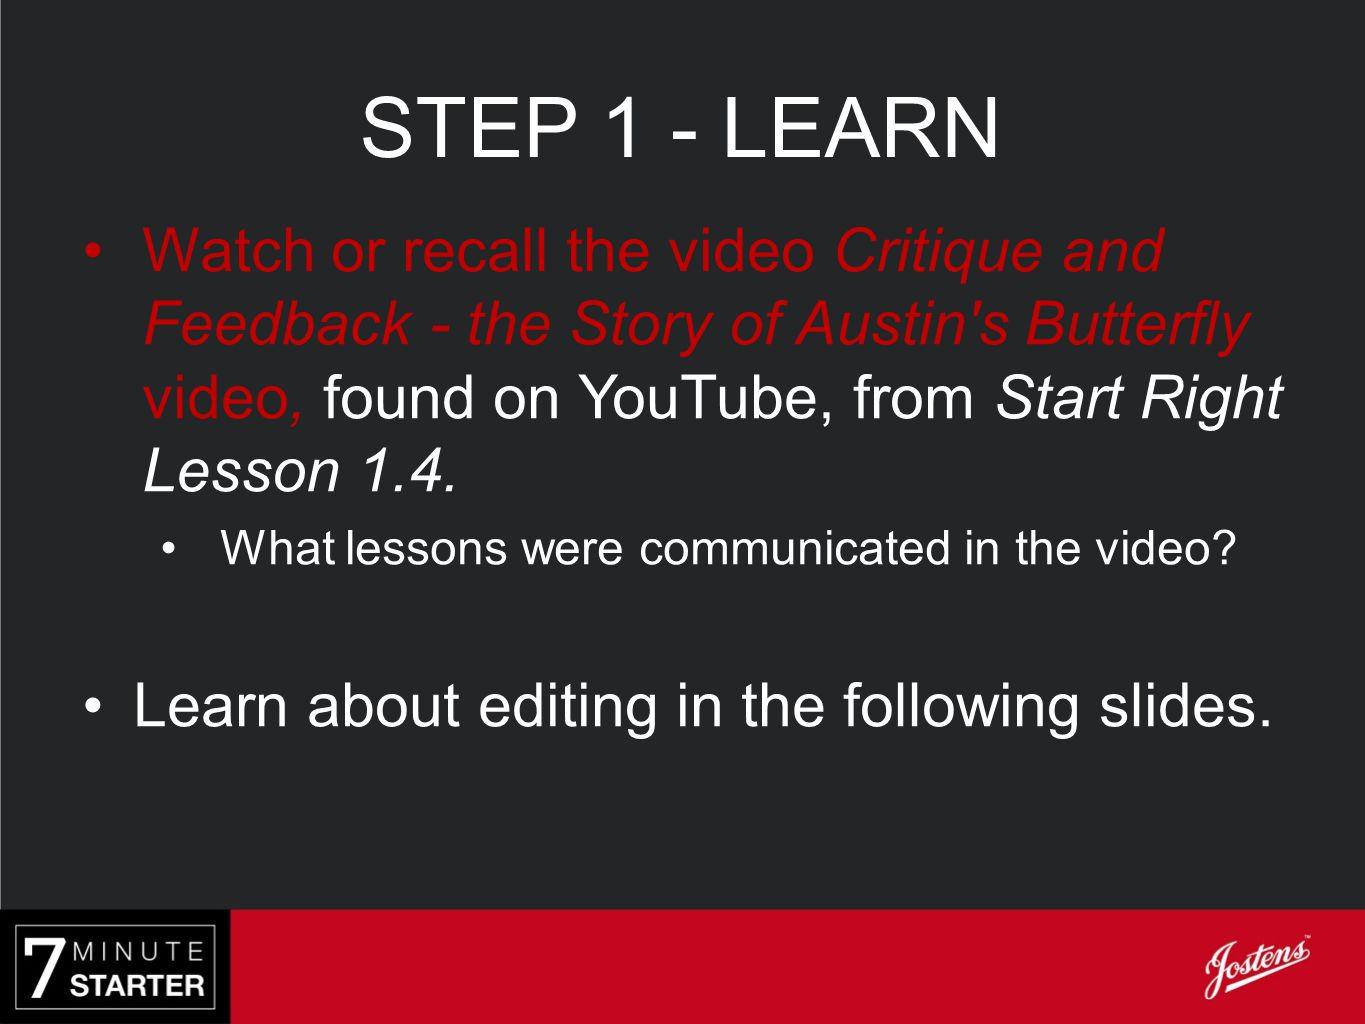 COLLABORATION IS KEY When editor and writer work together from the beginning, content improves.